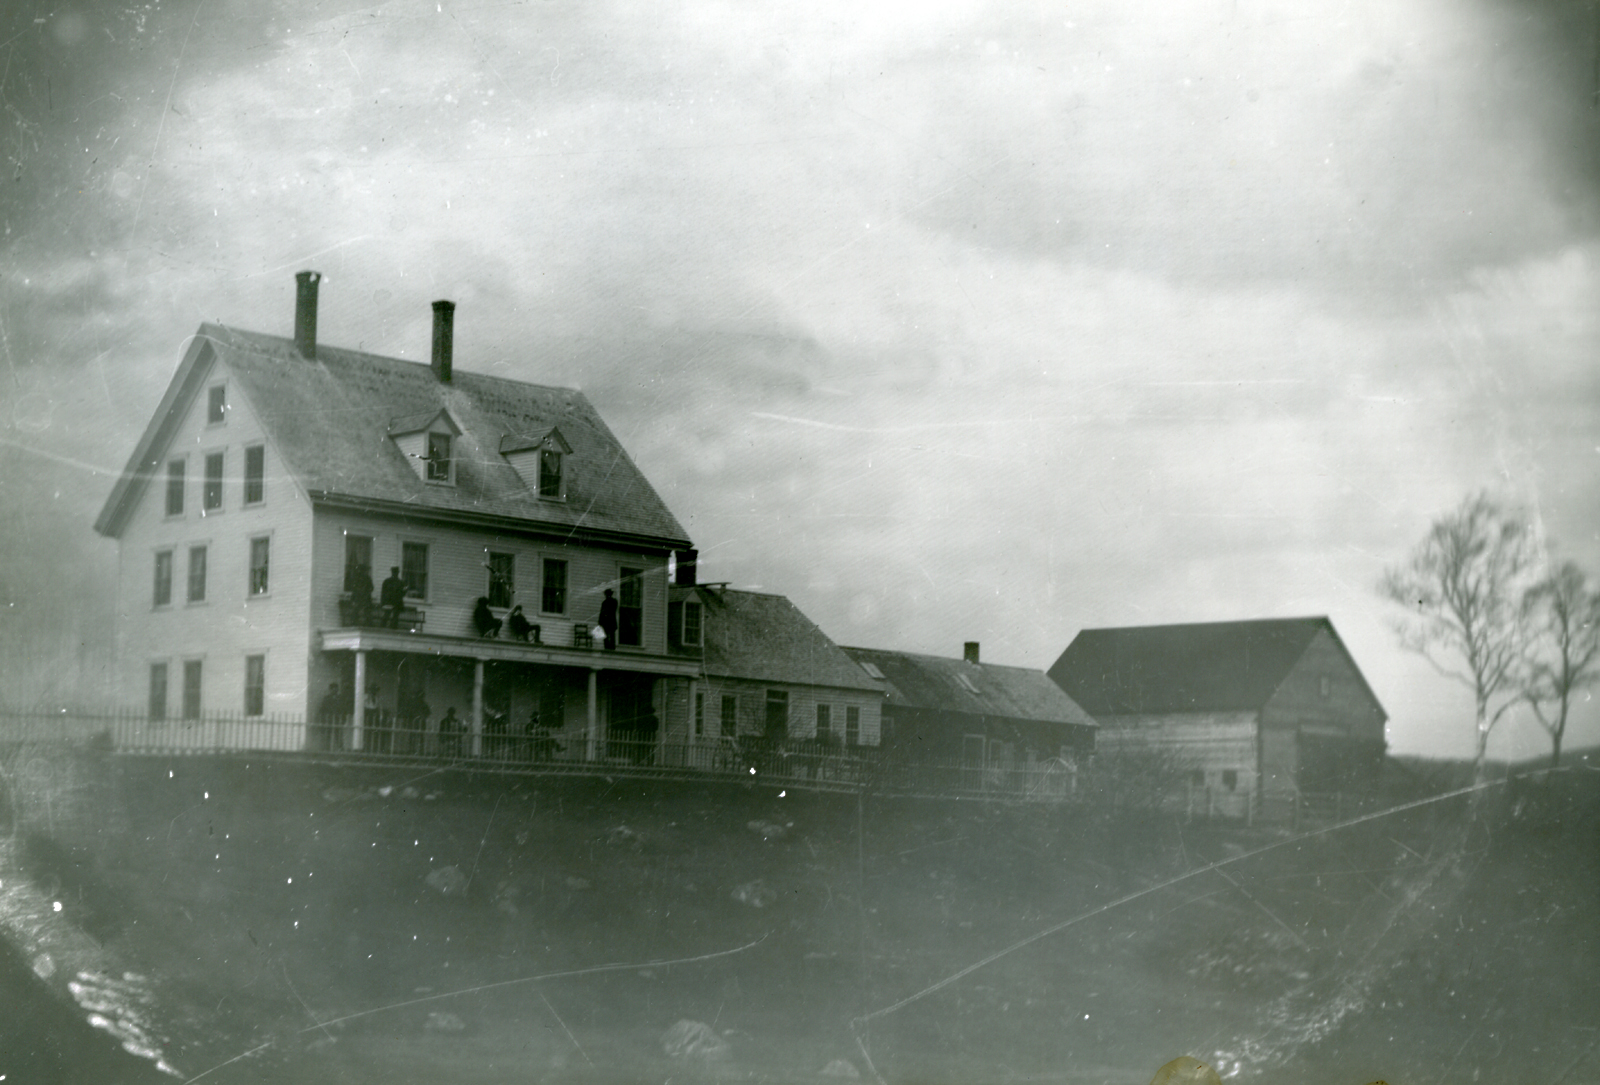 The Freeman House with People on Porch and Balcony